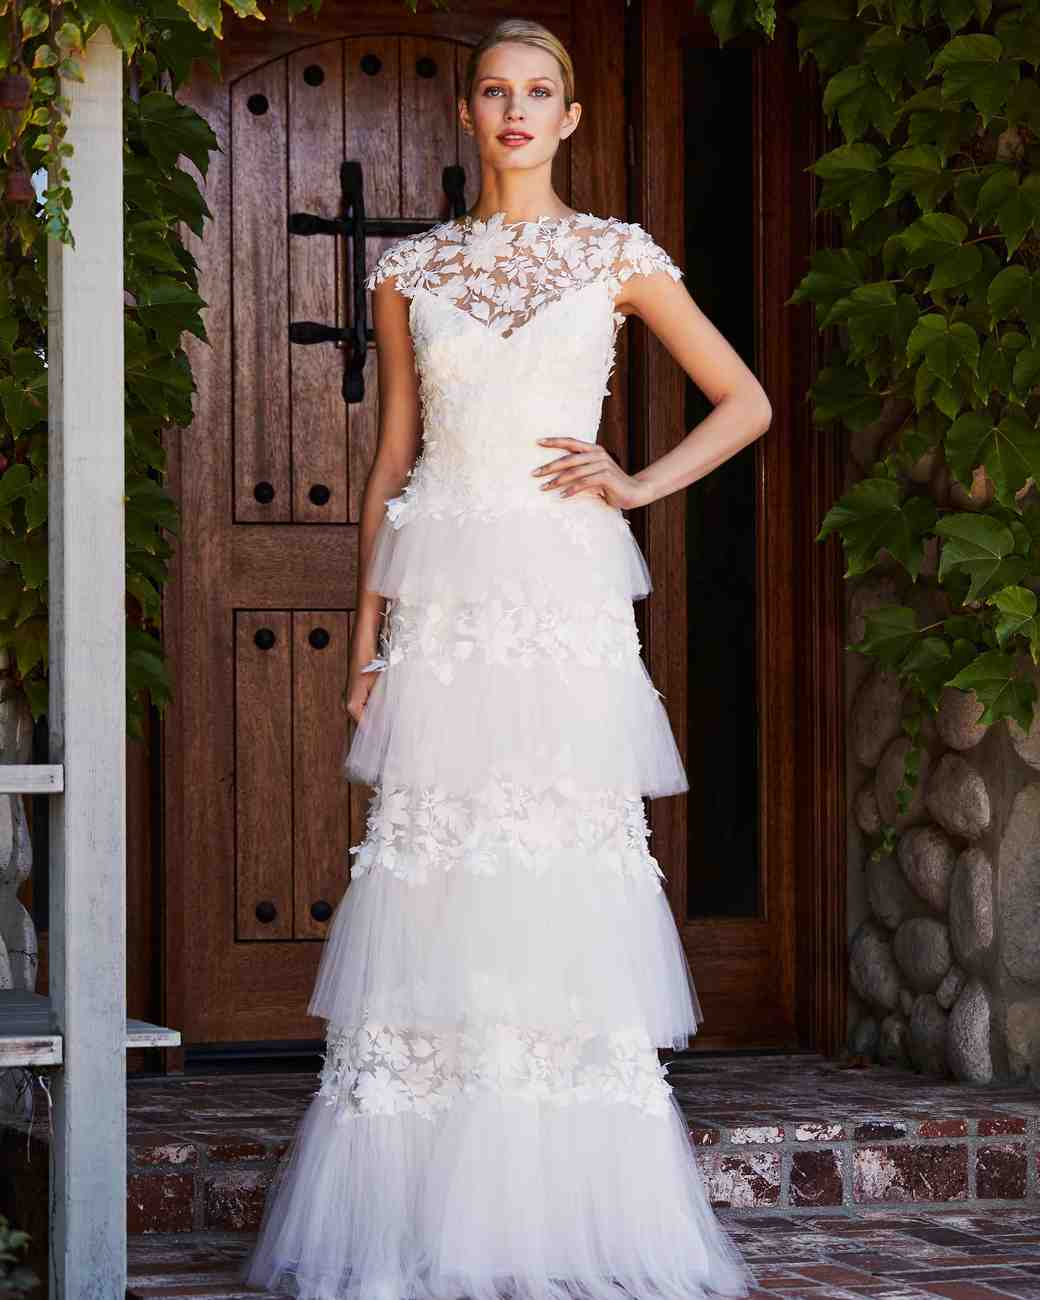 tadashi shoji wedding dress fall 2018 tiered tulle high neck